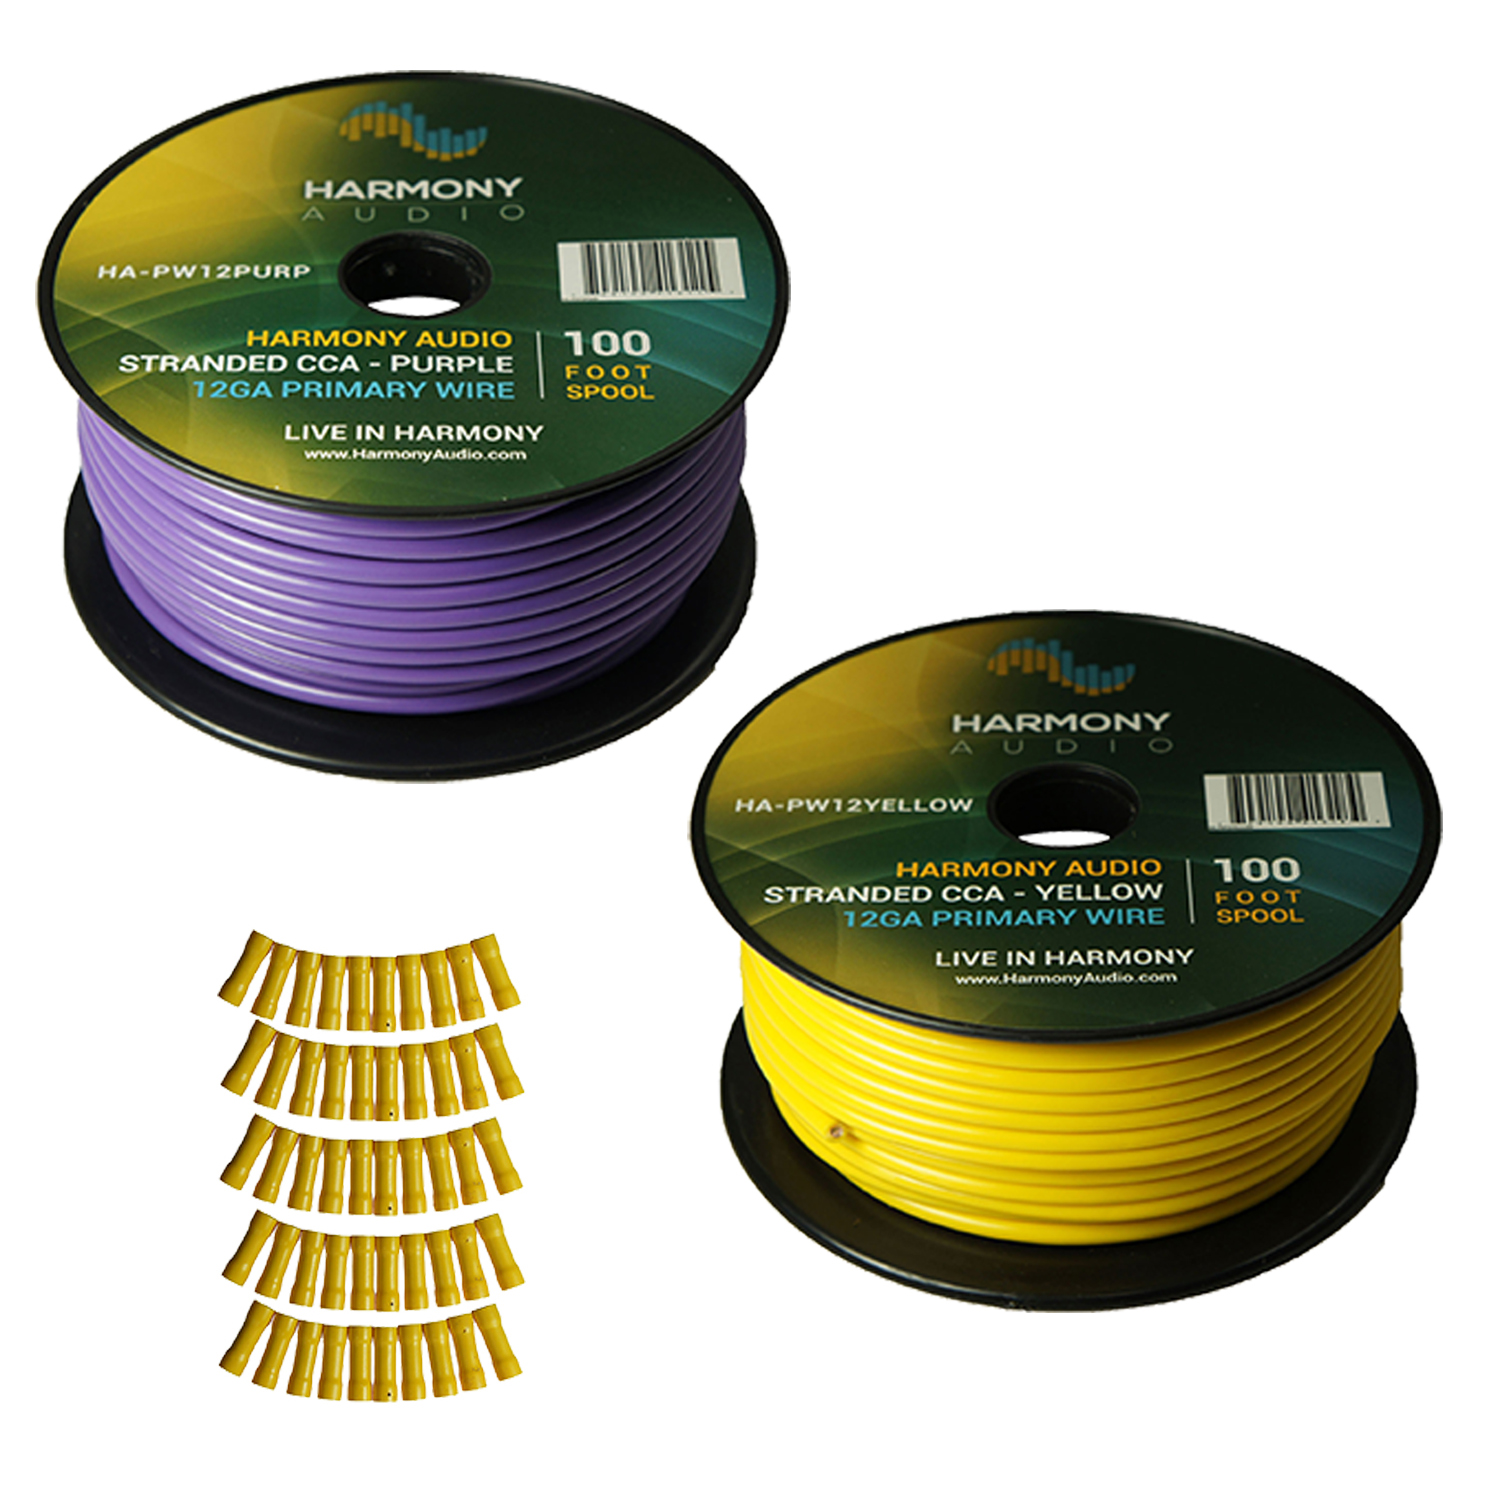 Harmony Audio Primary Single Conductor 12 Gauge Power or Ground Wire - 2 Rolls - 200 Feet - Yellow & Purple for Car Audio / Trailer / Model Train / Remote